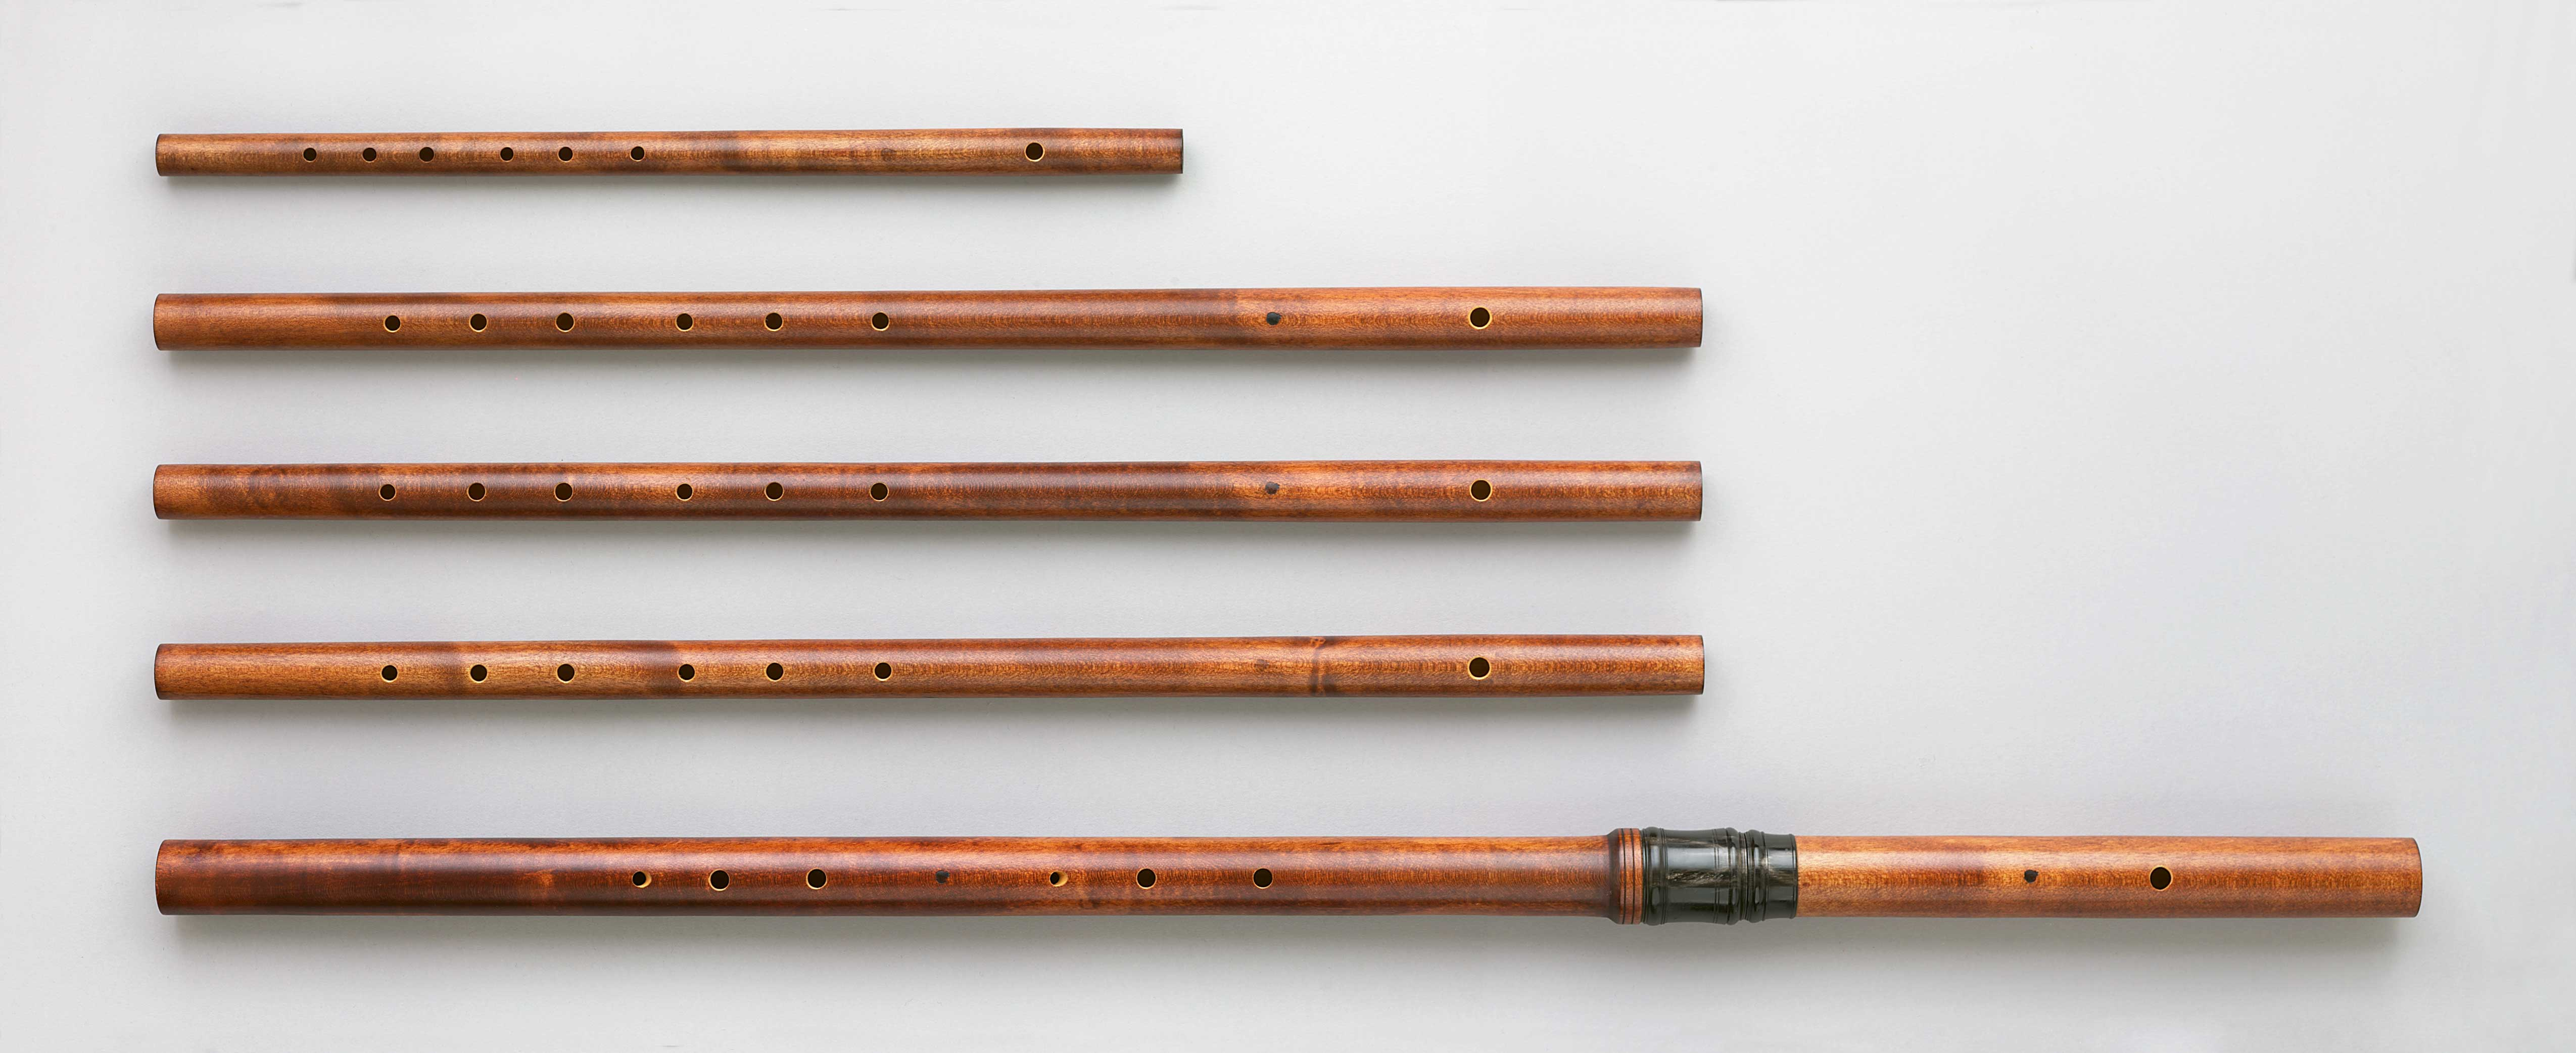 Woodwind family instruments woodwind family - Boaz Berney Historical Flutes